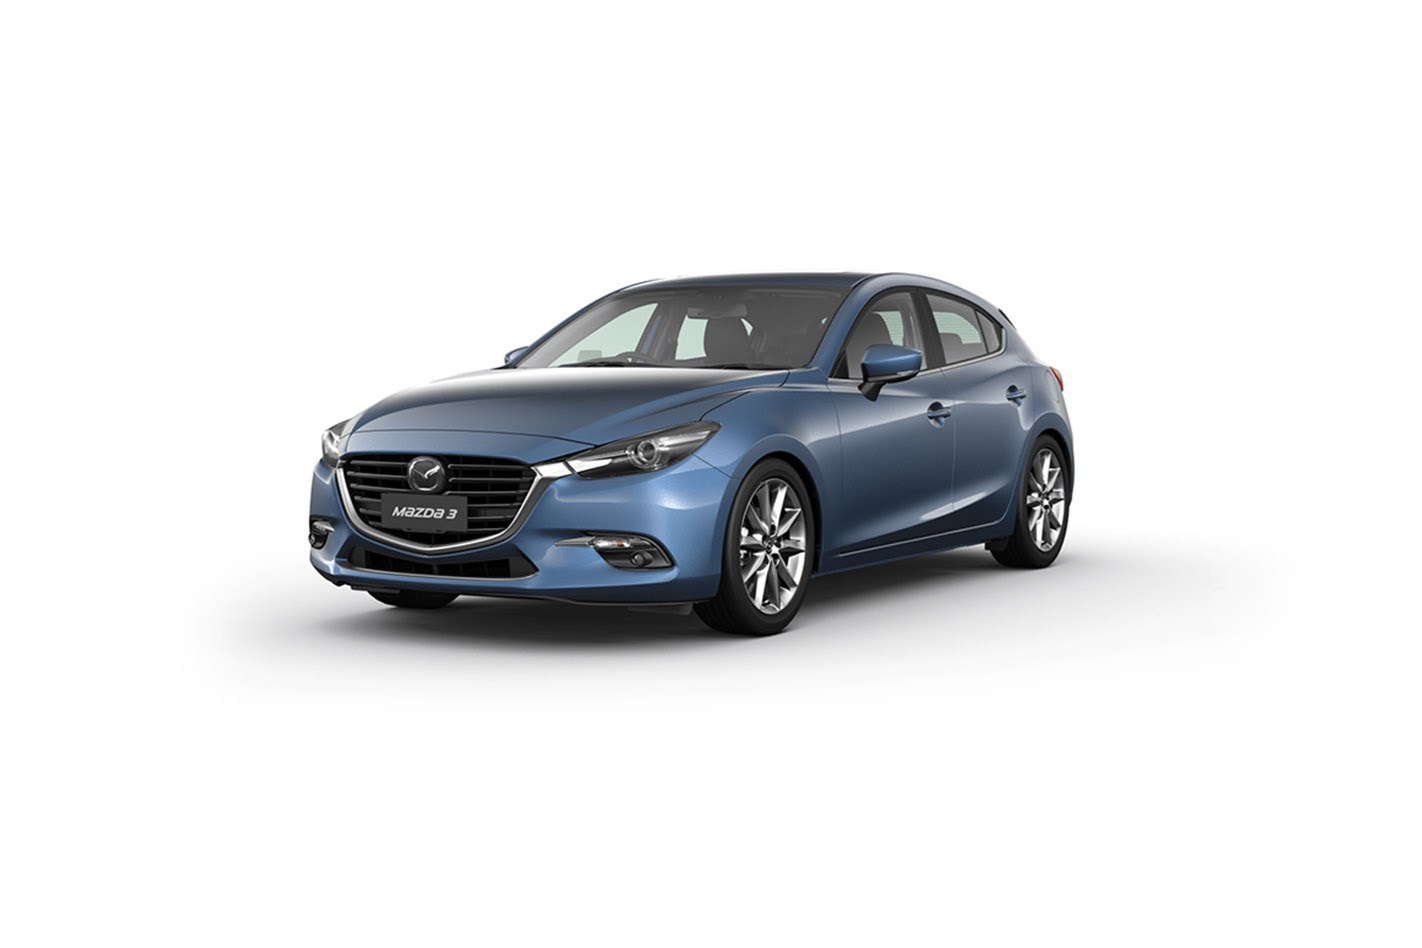 Mazda 3 Owners Manual: Voice Recognition (Type A)